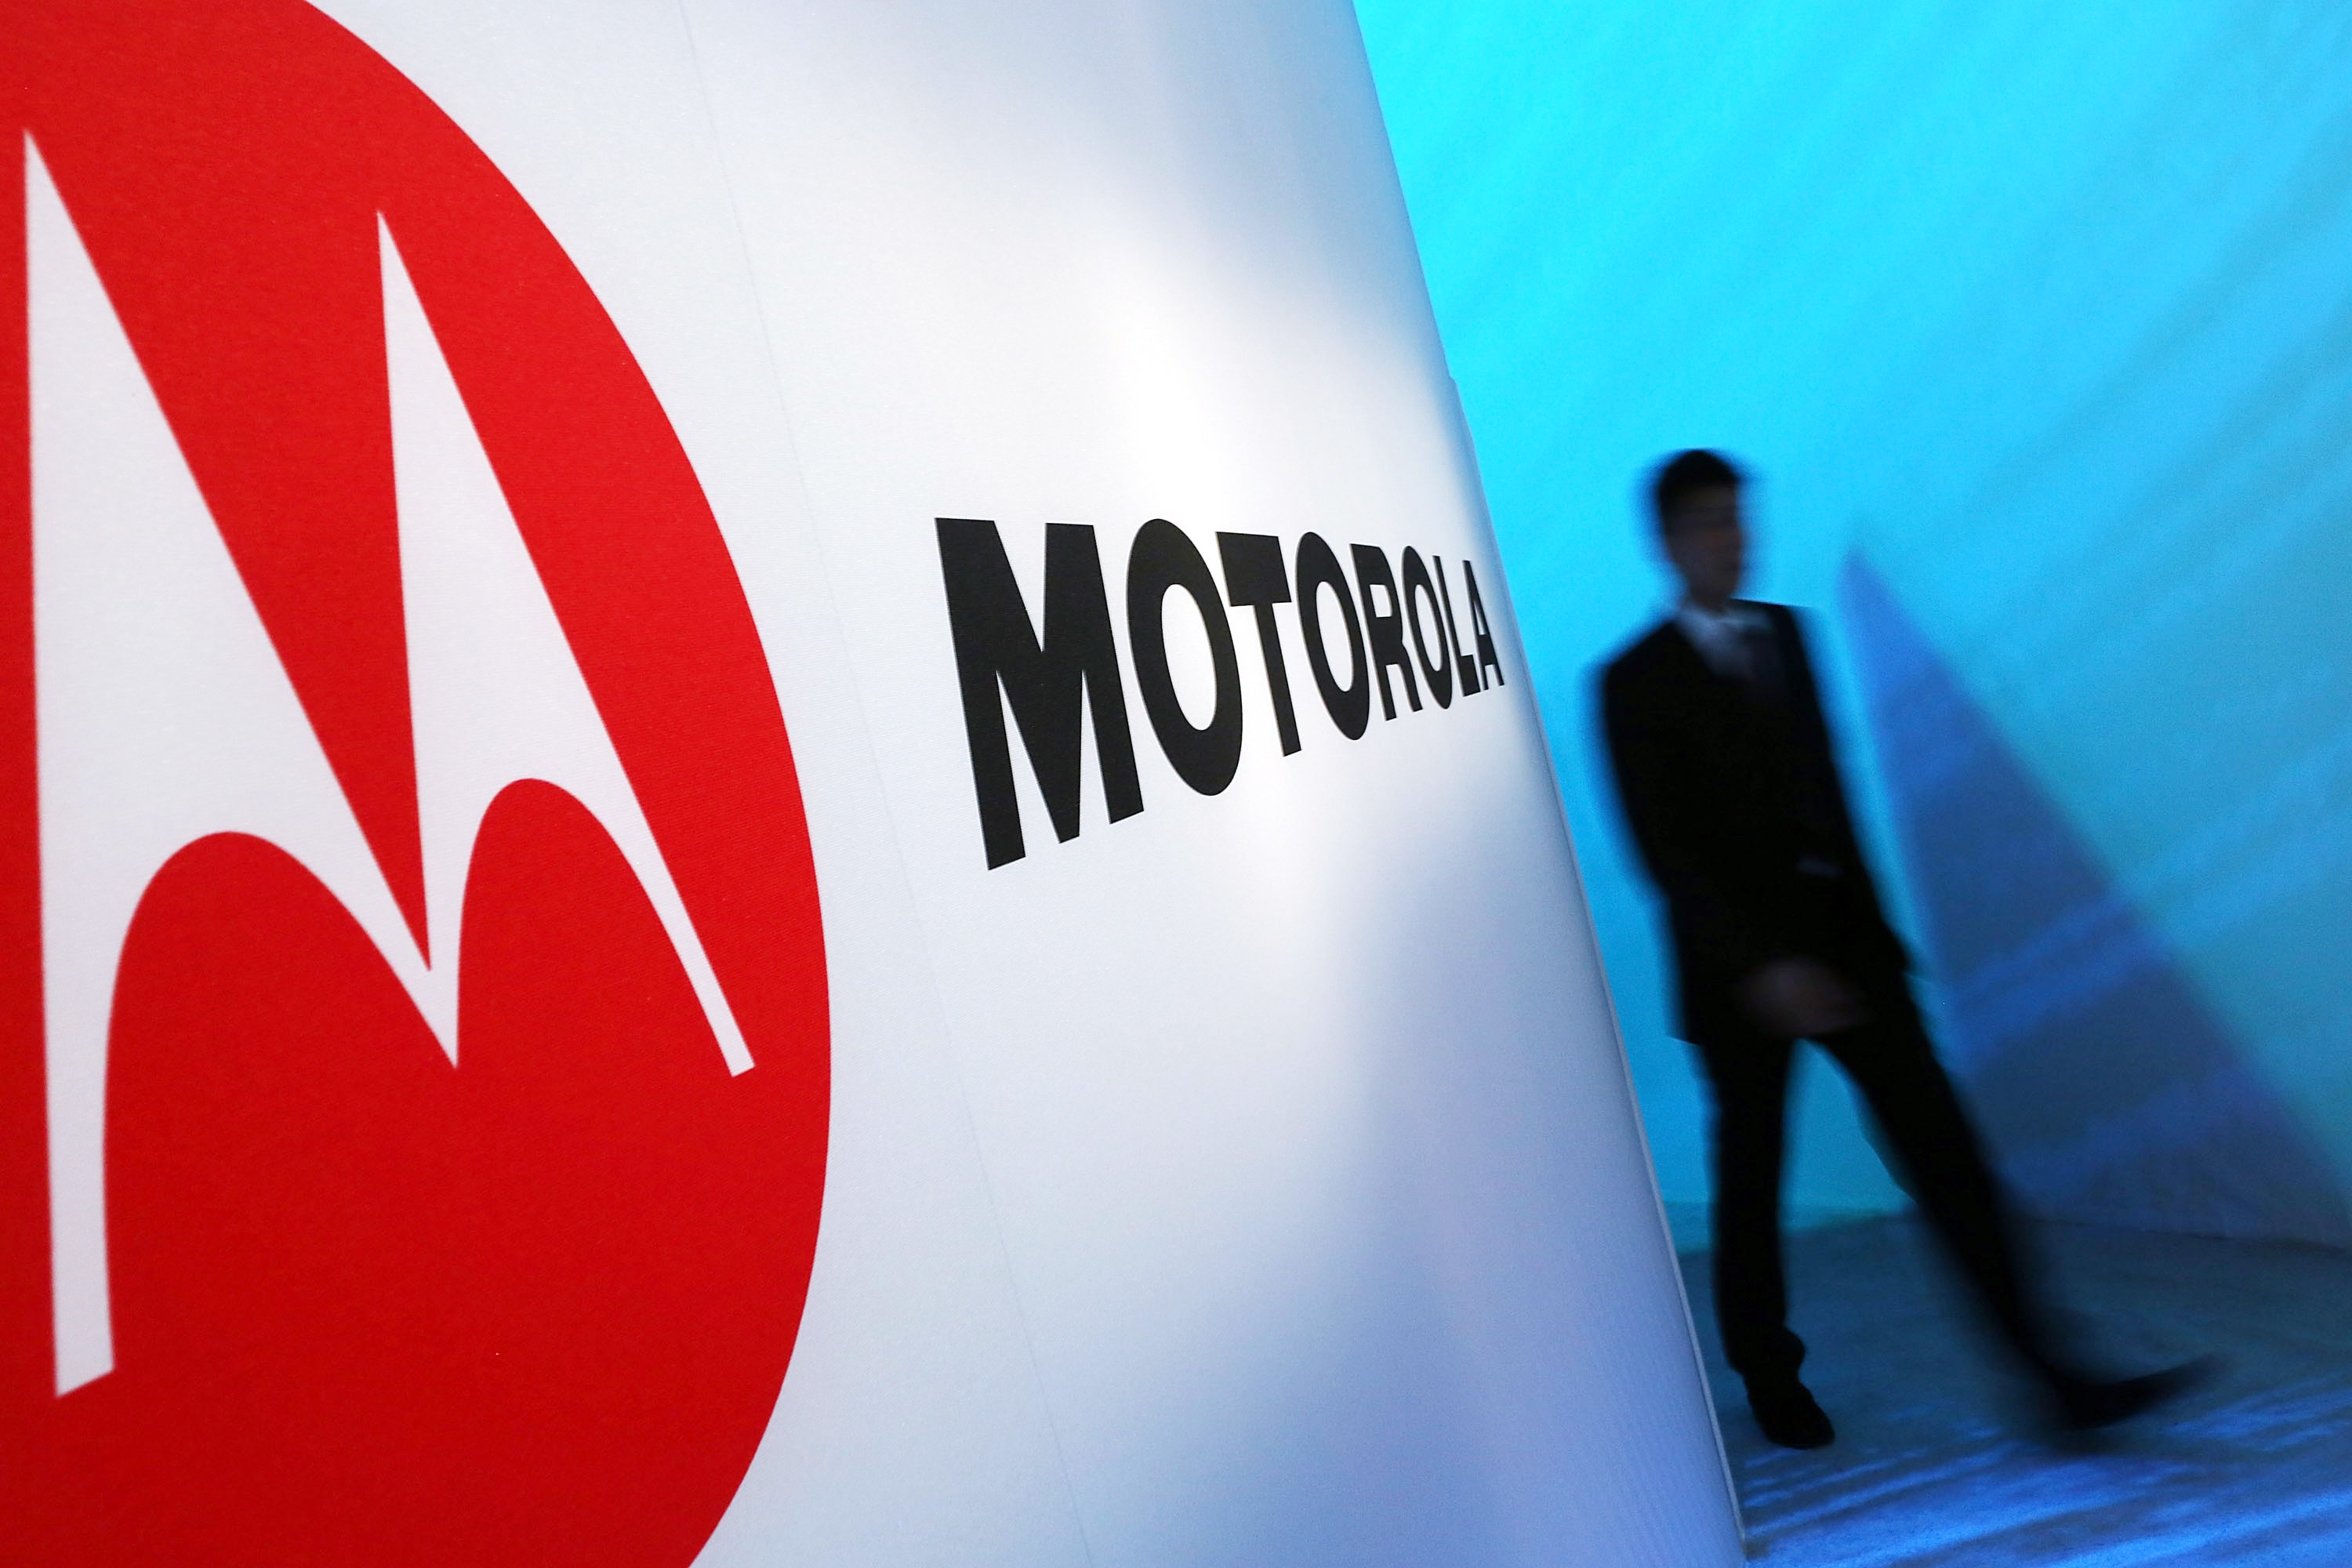 Google reportedly selling Motorola handset division to Lenovo for around $3 billion